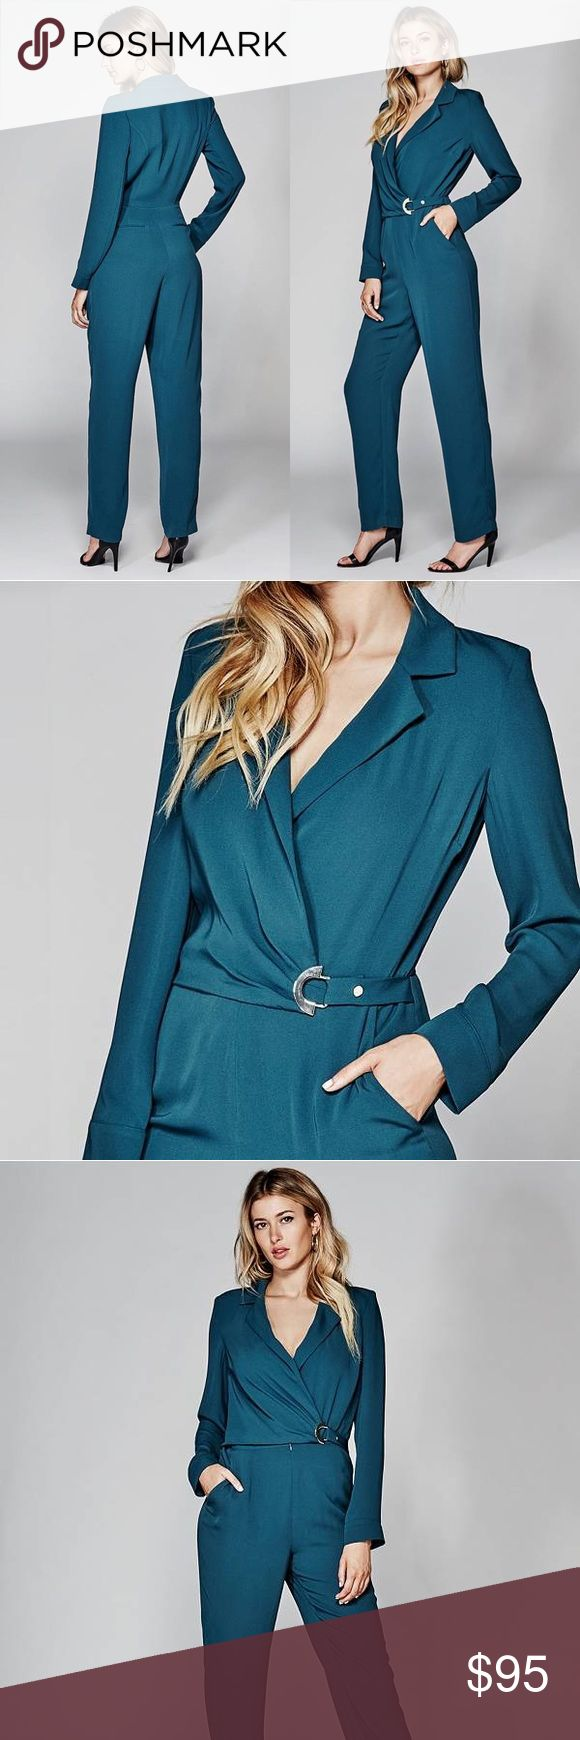 Guess by Marciano designer jumpsuit 💙Beautiful teal formal jumpsuit 〰 New with tag💙 Guess by Marciano Other